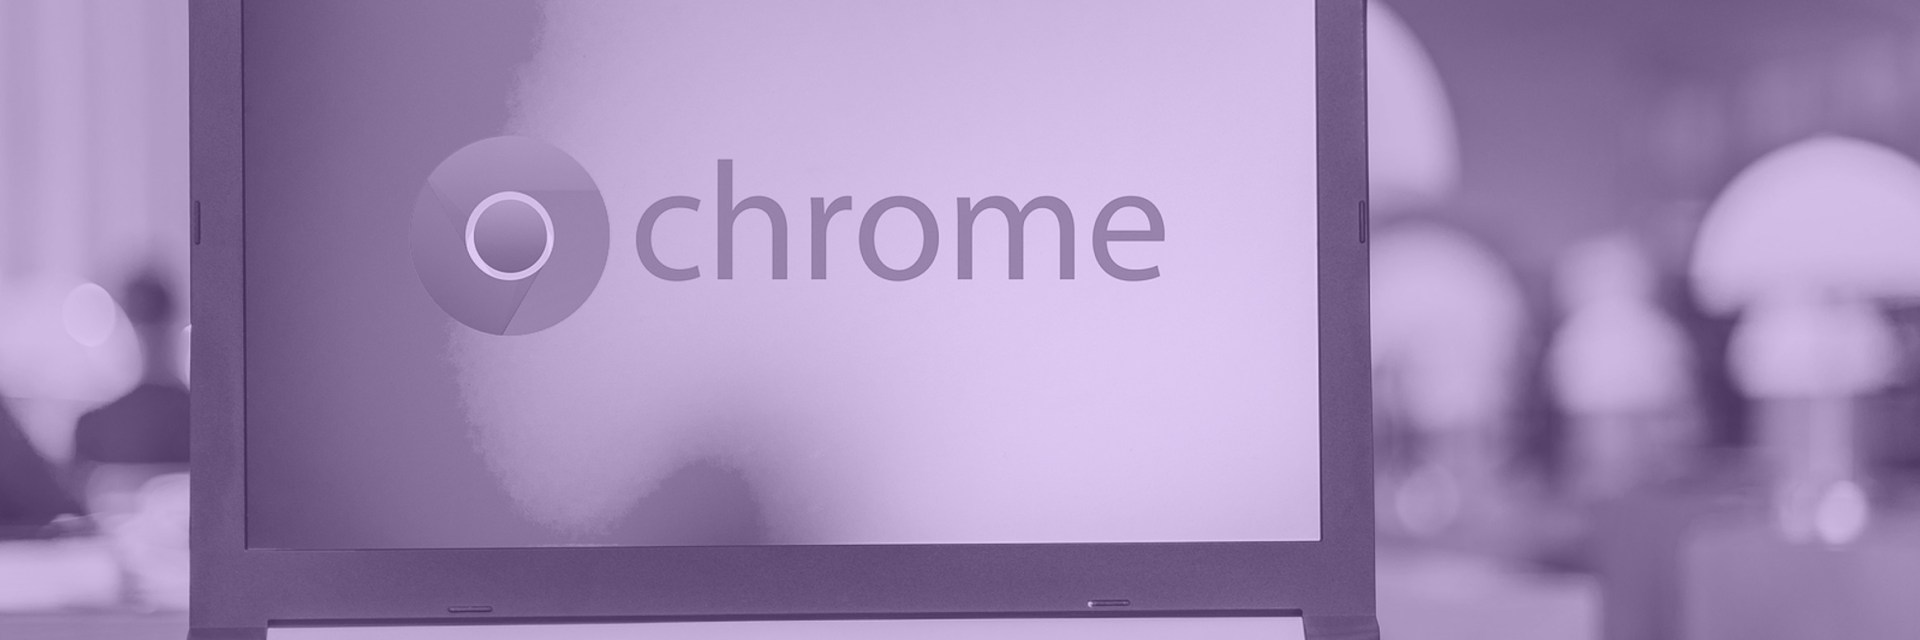 Chrome Zero-Day Exploit Posted on Twitter - Patch Followed by Similar Exploit Days Later